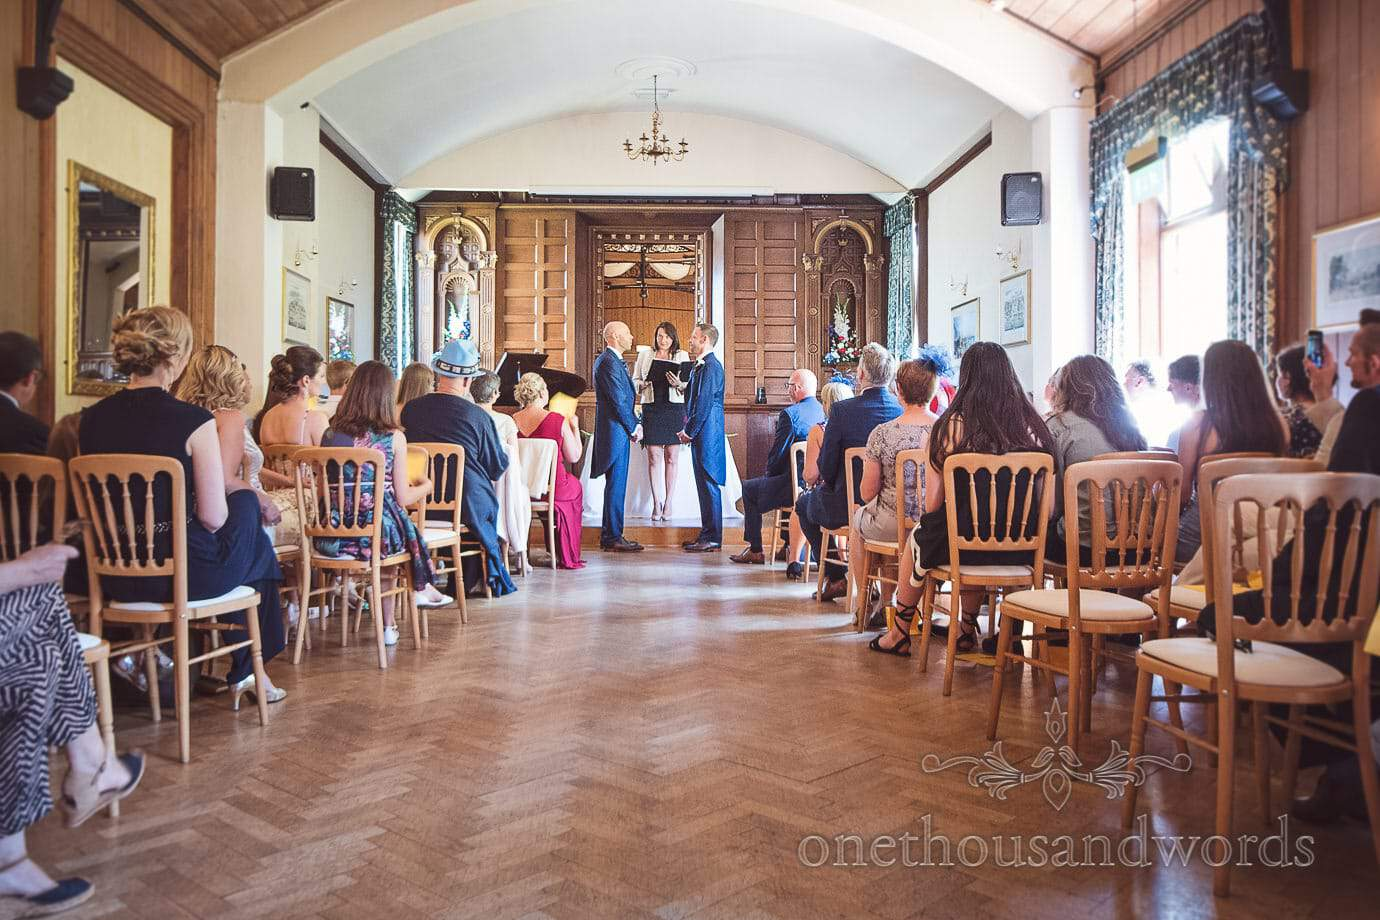 Purbeck House hotel same sex wedding ceremony room with wooden panels